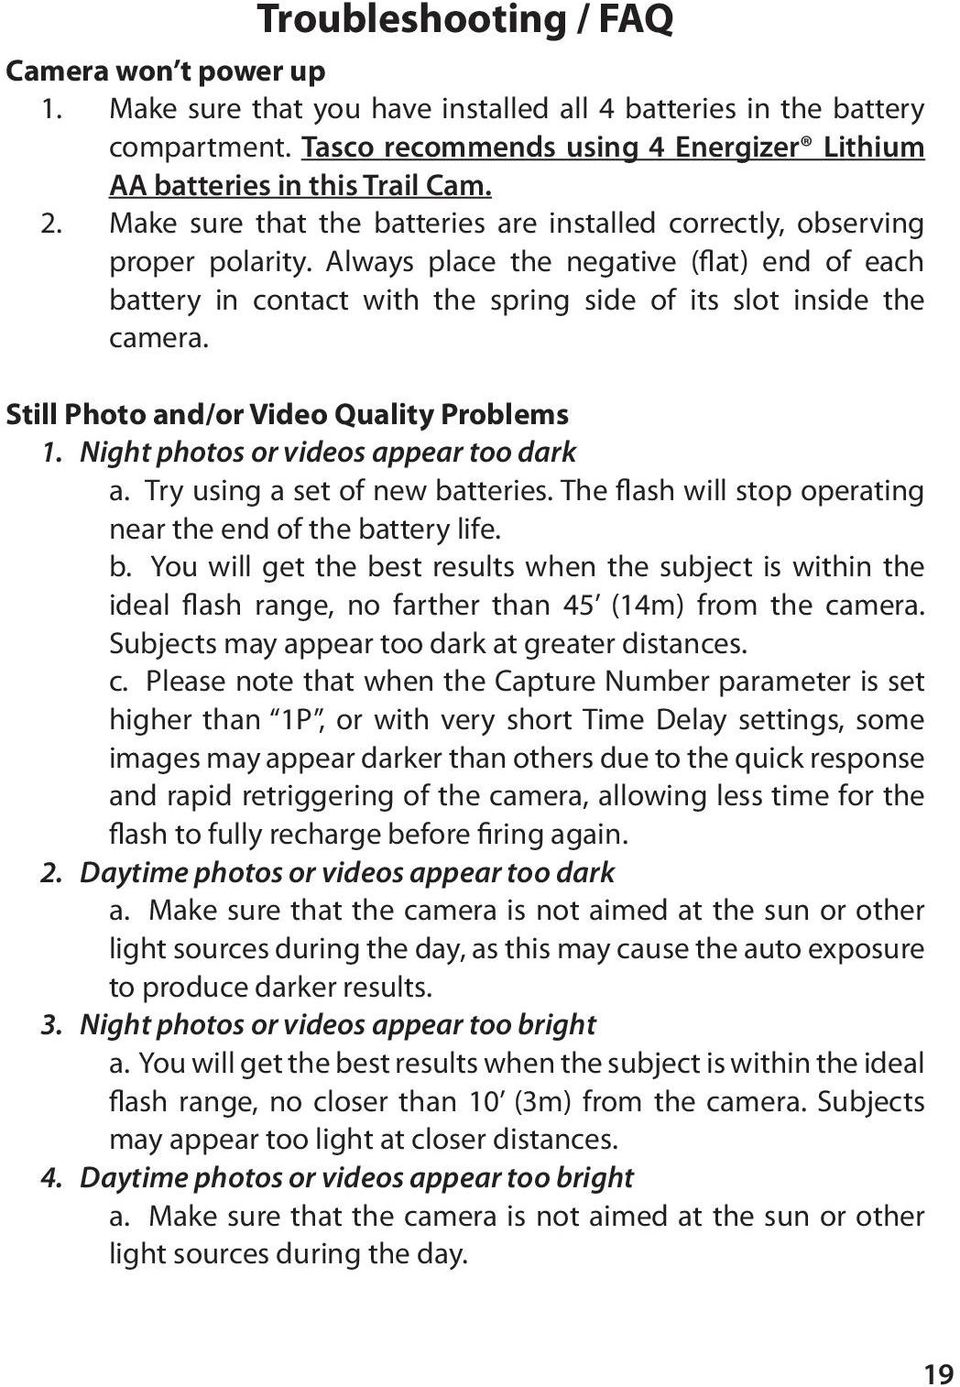 Still Photo and/or Video Quality Problems 1. Night photos or videos appear too dark a. Try using a set of new ba